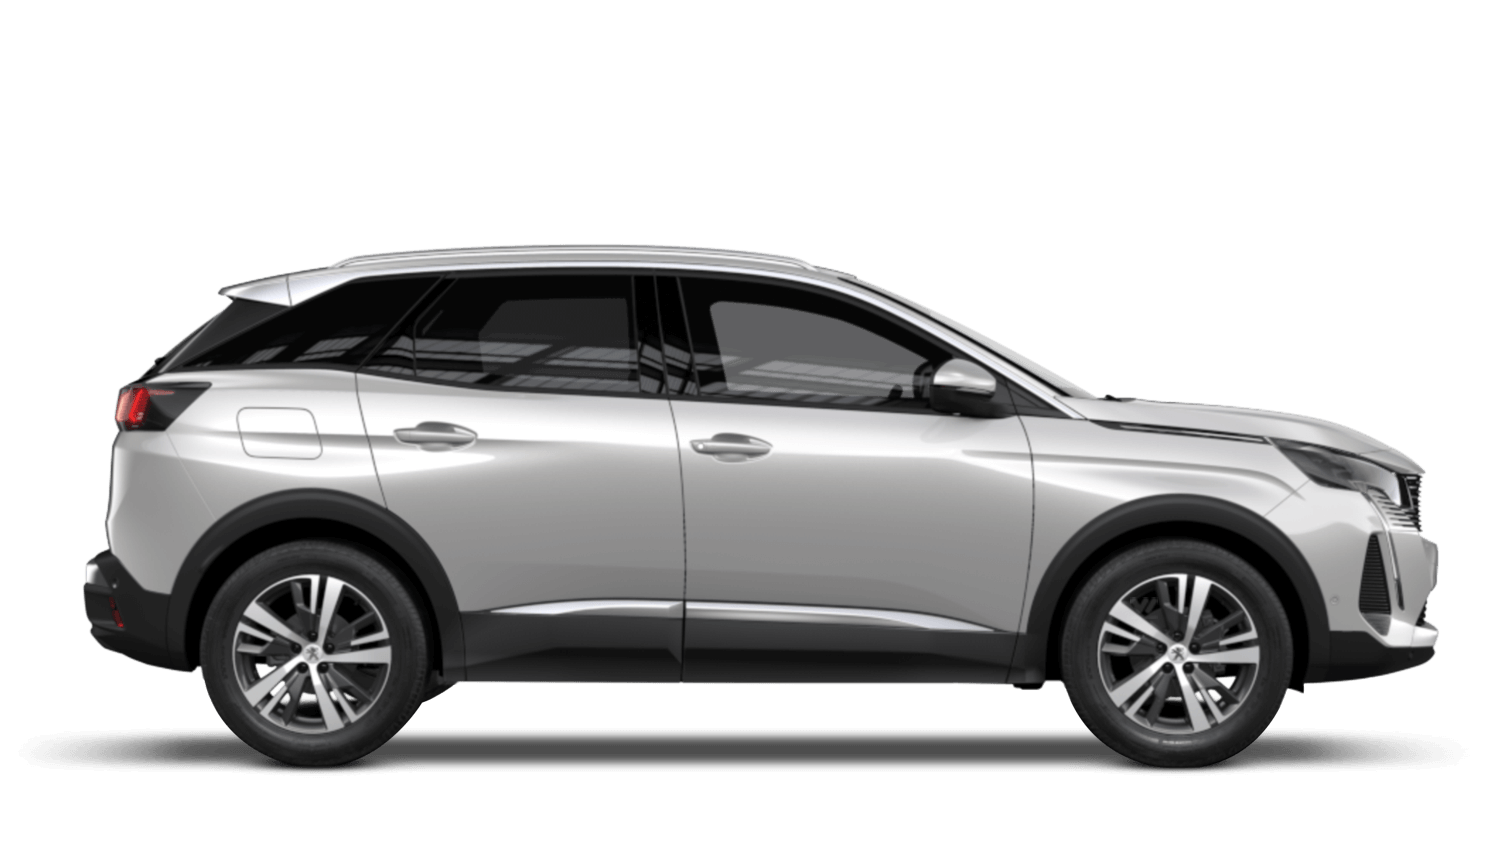 Pearlescent White New Peugeot 3008 SUV